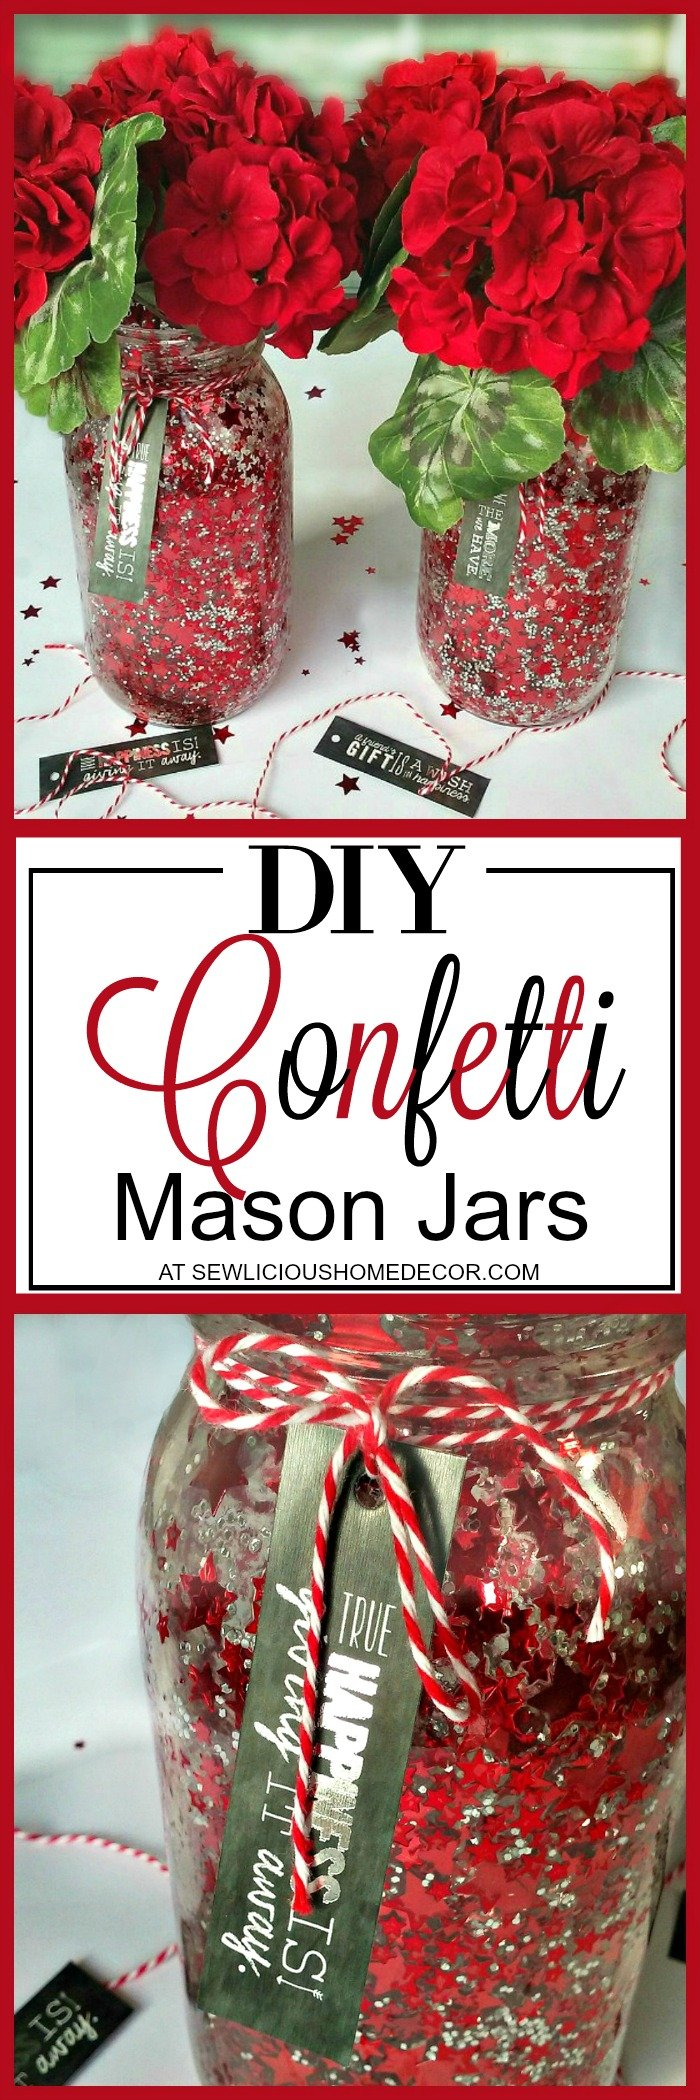 DIY Confetti Mason Jar Crafts at sewlicioushomedecor.com